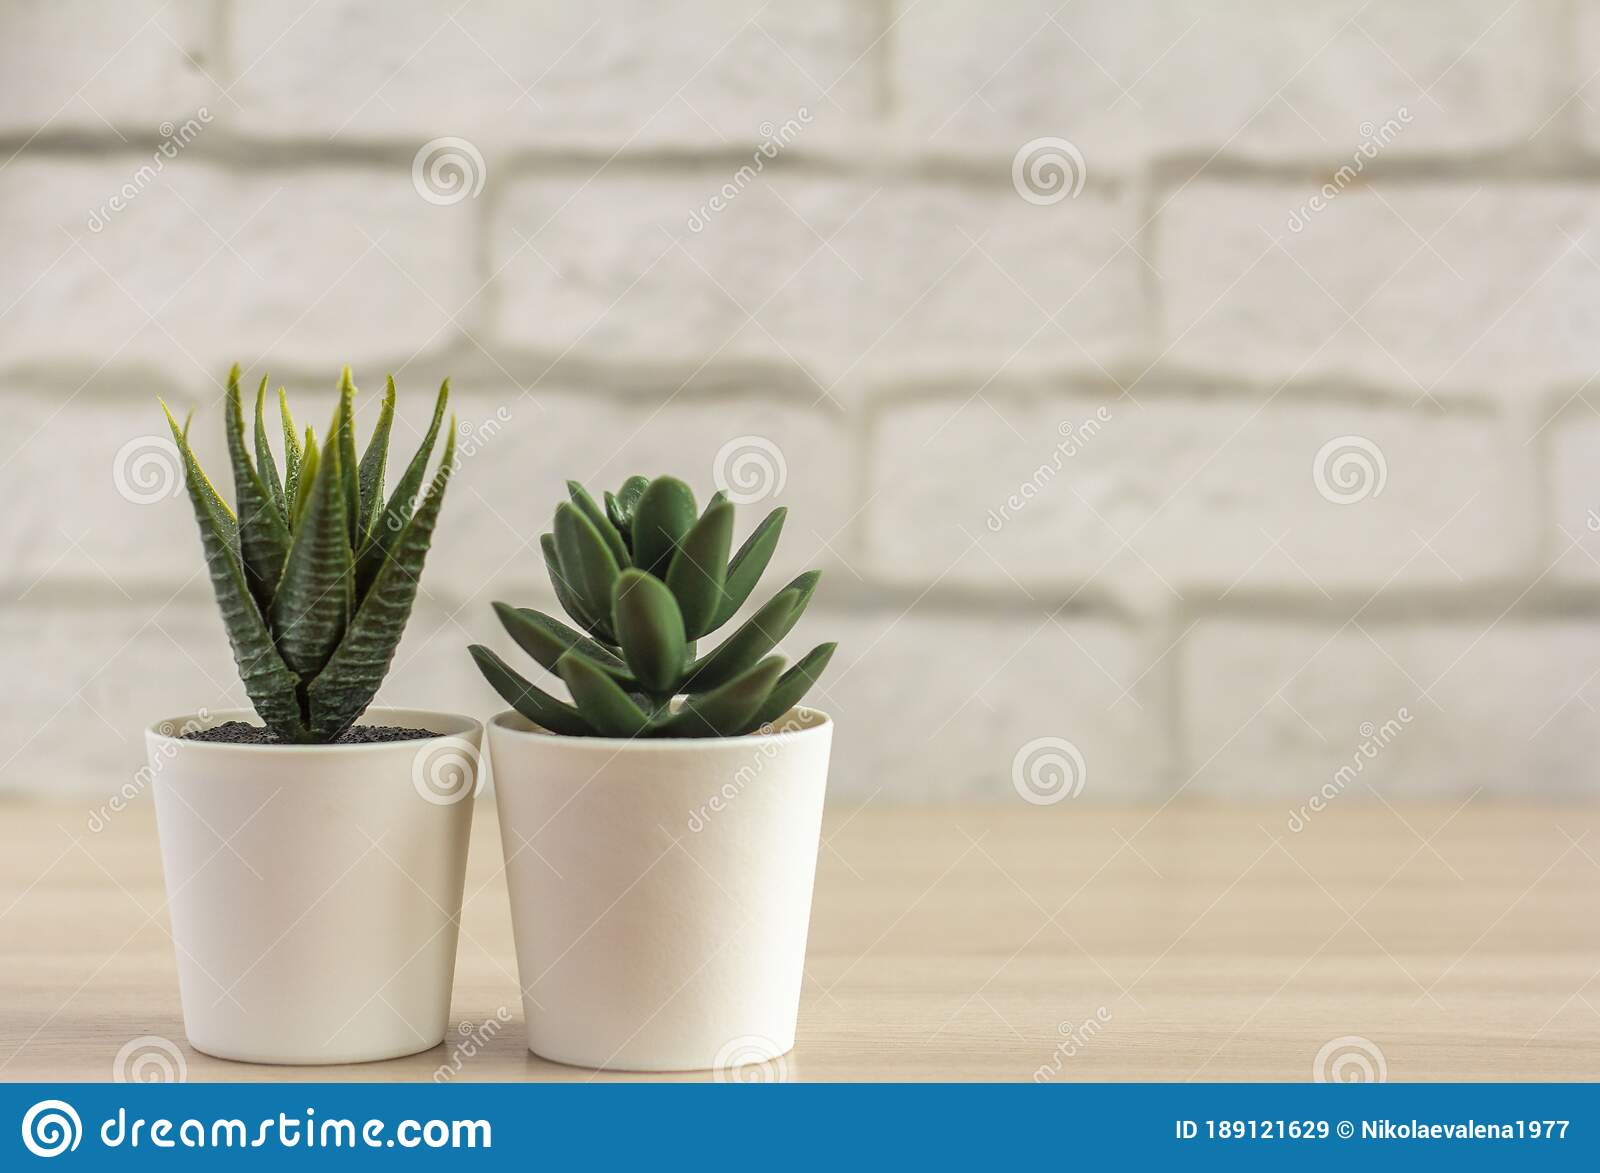 Indoor Plants Various Succulents In Pots Succulents In White Mini Pots Ideas For Home Decoration Copy Space Stock Image Image Of Garden Grow 189121629